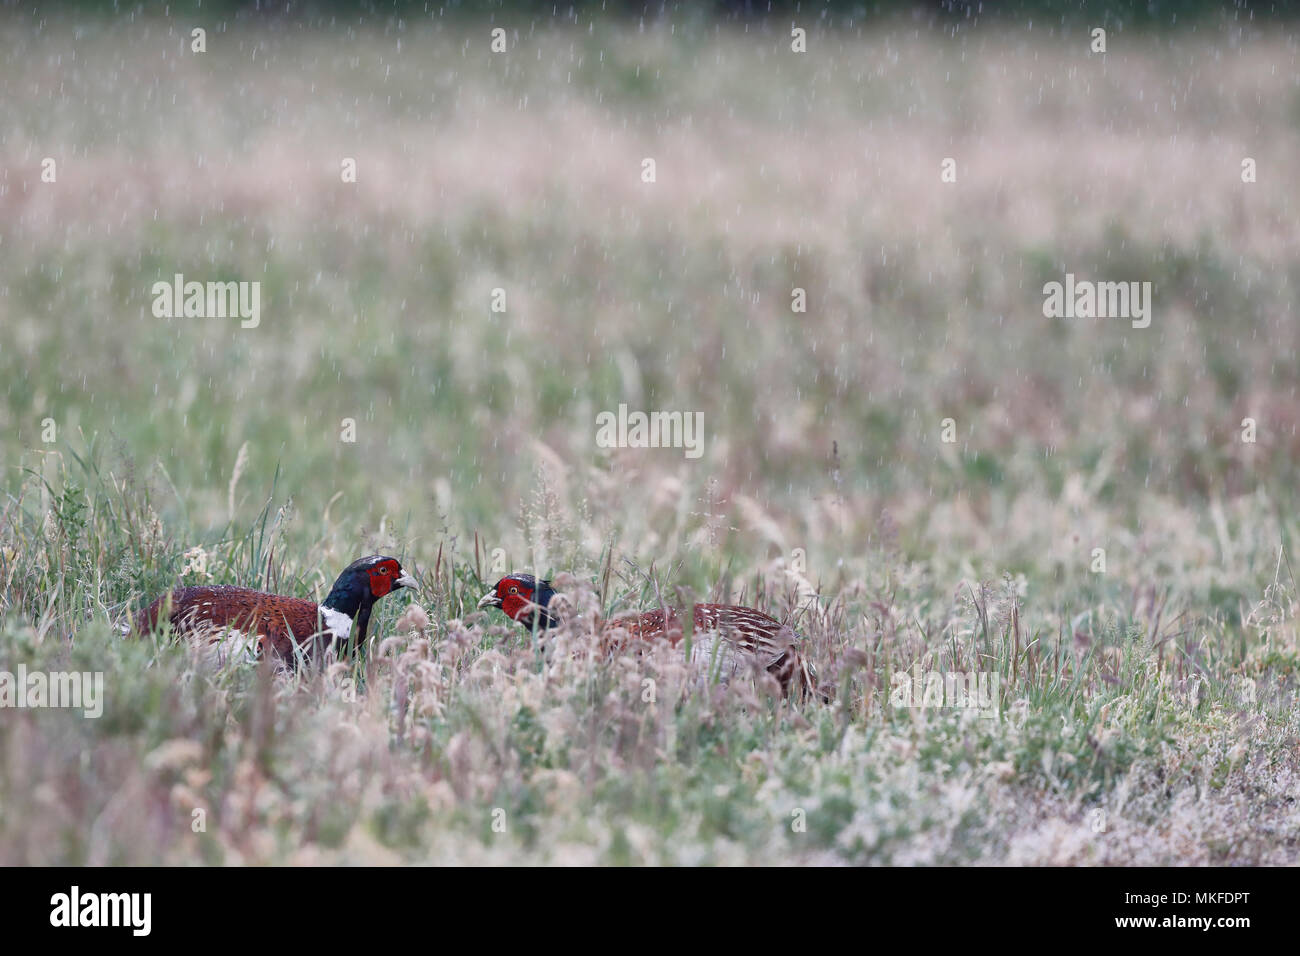 Ring-necked Pheasant (Phasianus colchicus) face to face in the rain, Dombes, France - Stock Image